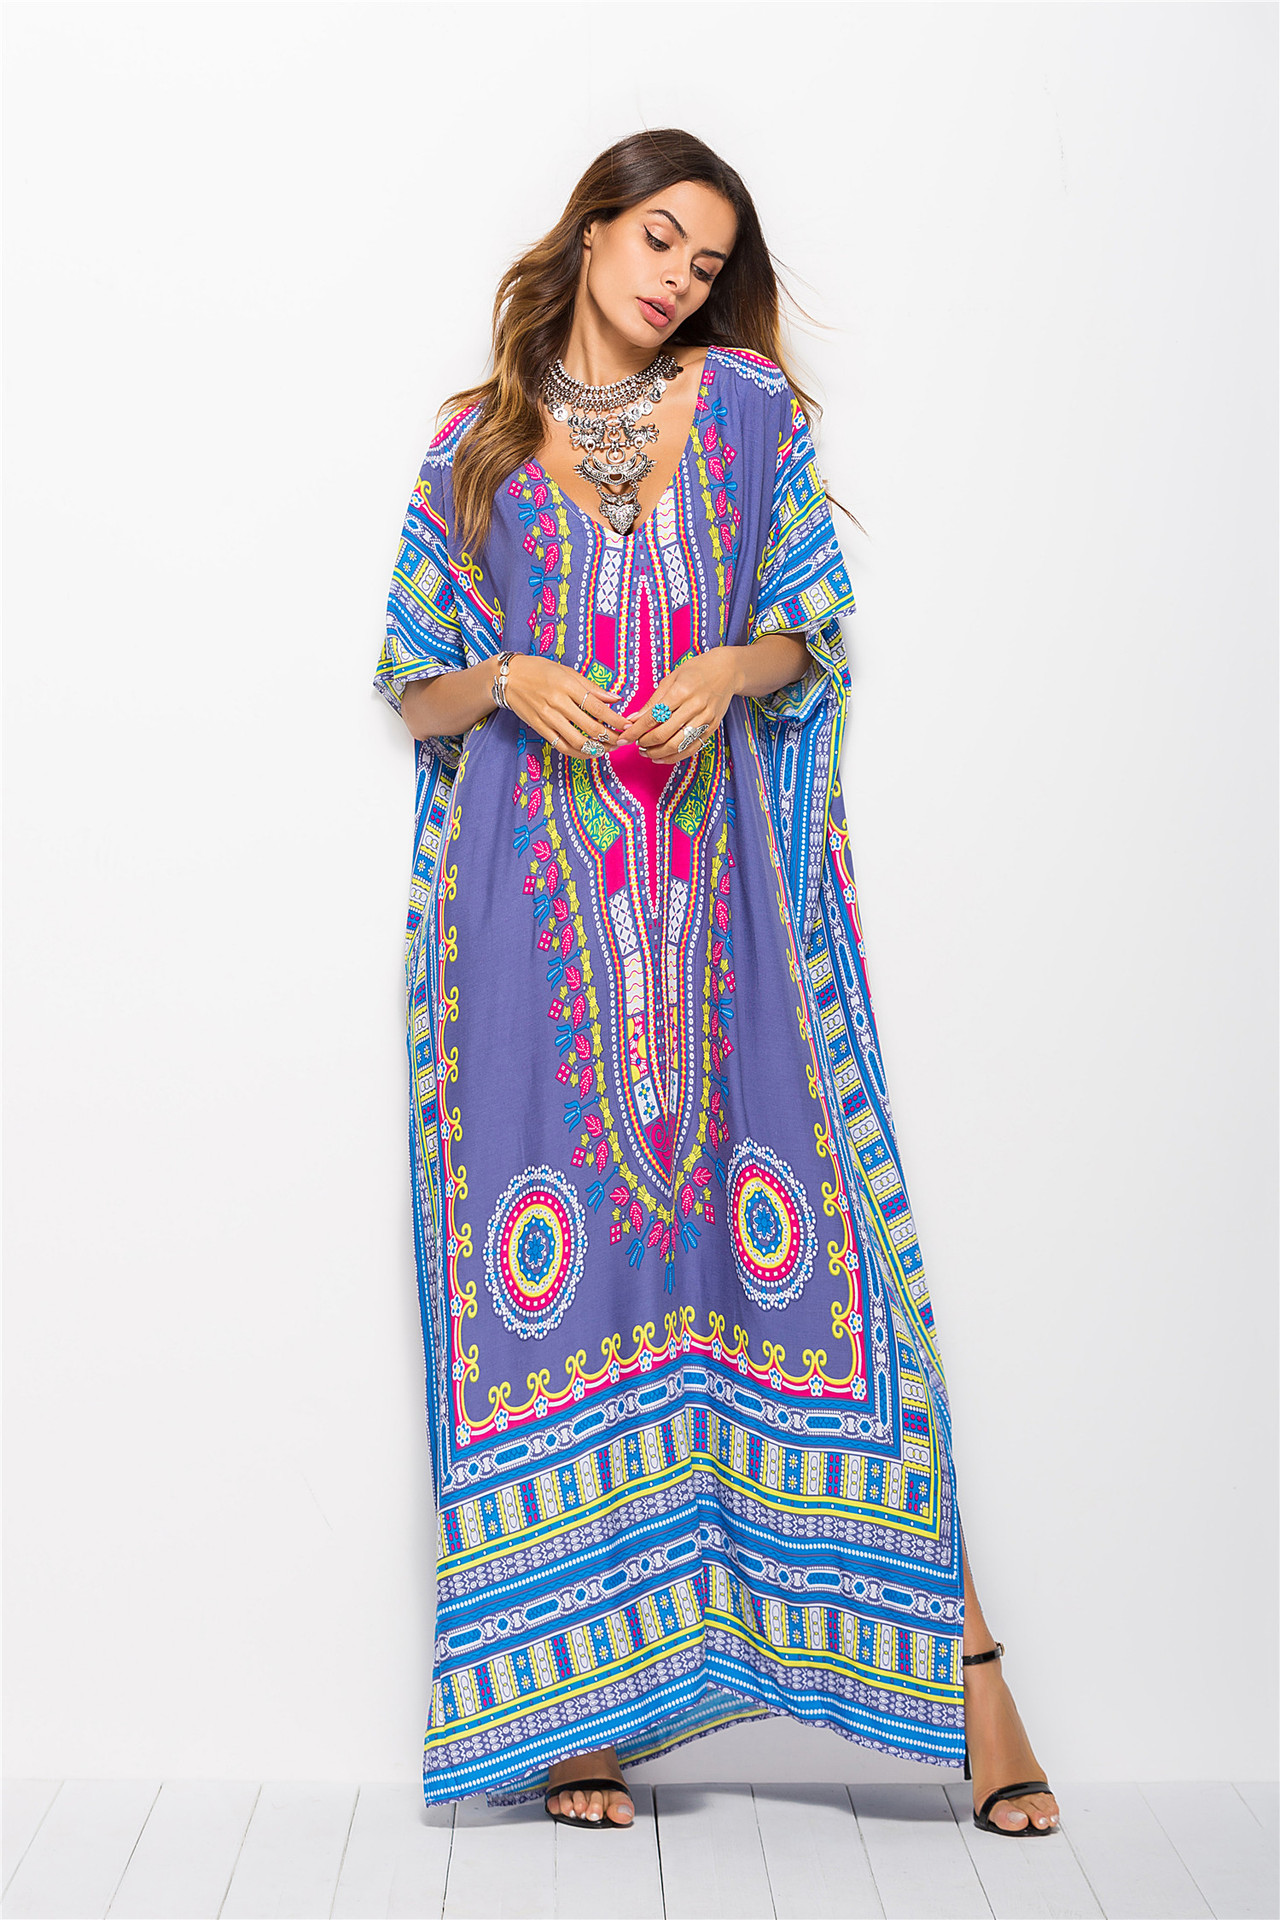 OEM Summer Bohemia style fashion design women maxi printed traditional floral long sleeve dress